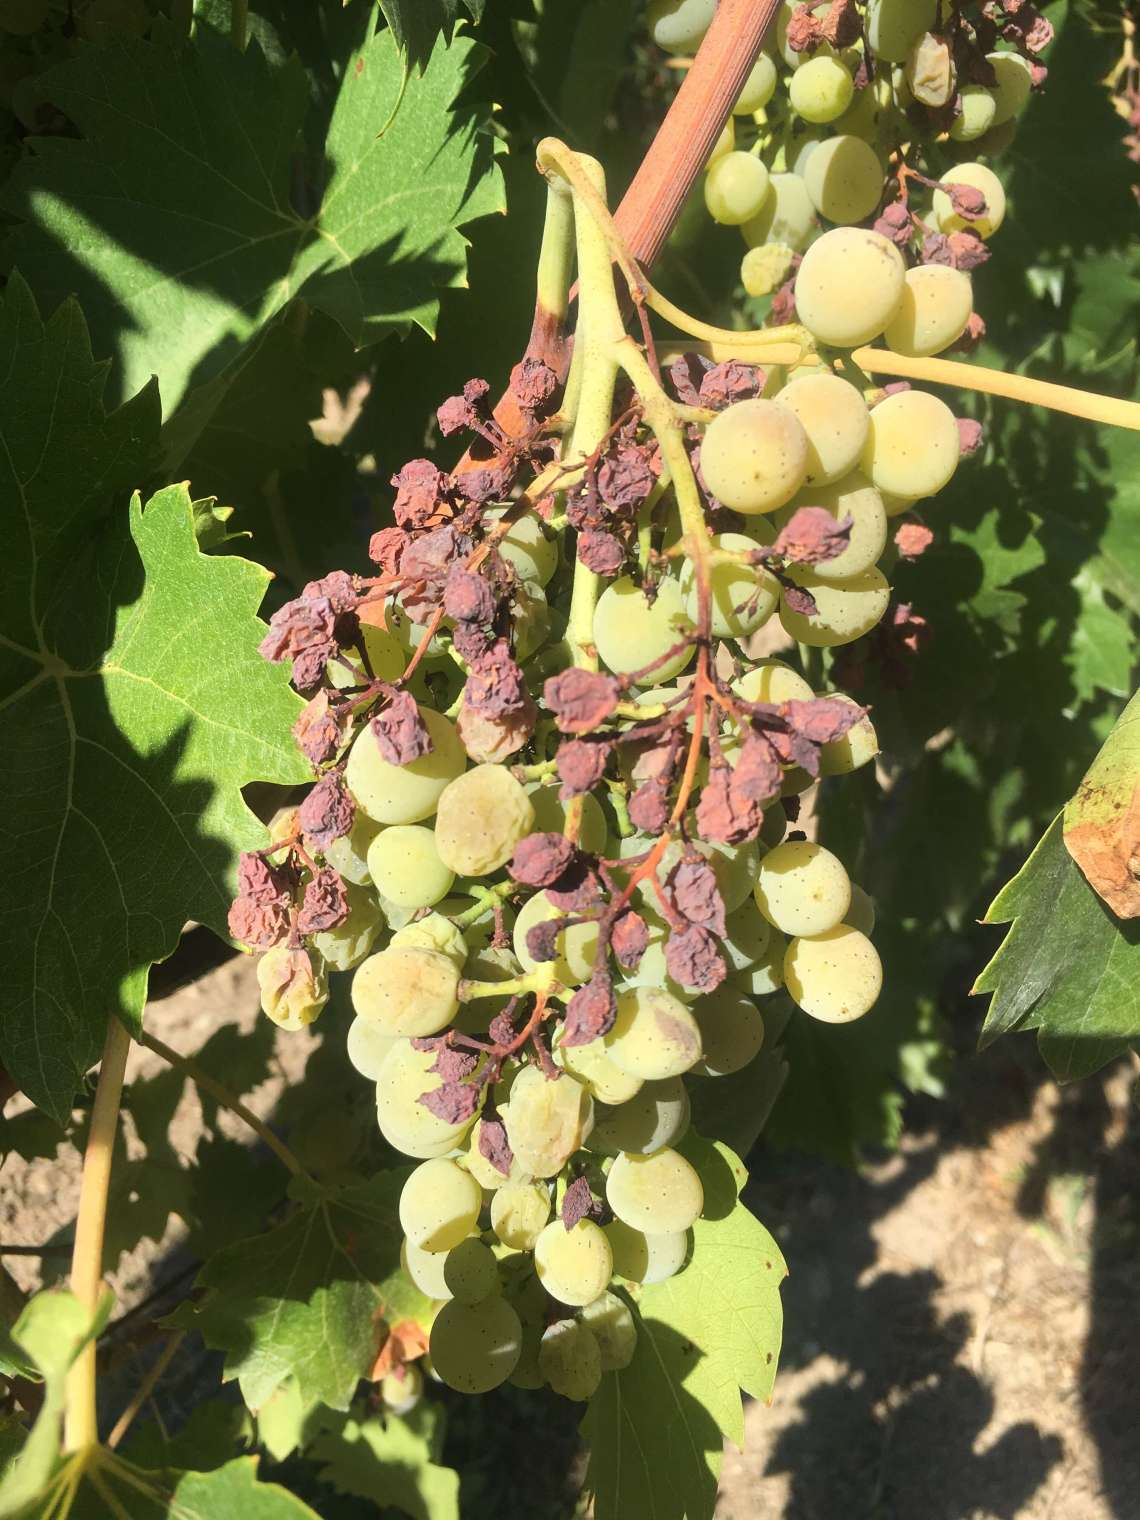 The extreme heat and dry climate this year may give Italian wine producers a reduction in grapes and wine this year. But perhaps it may lead to better wine?